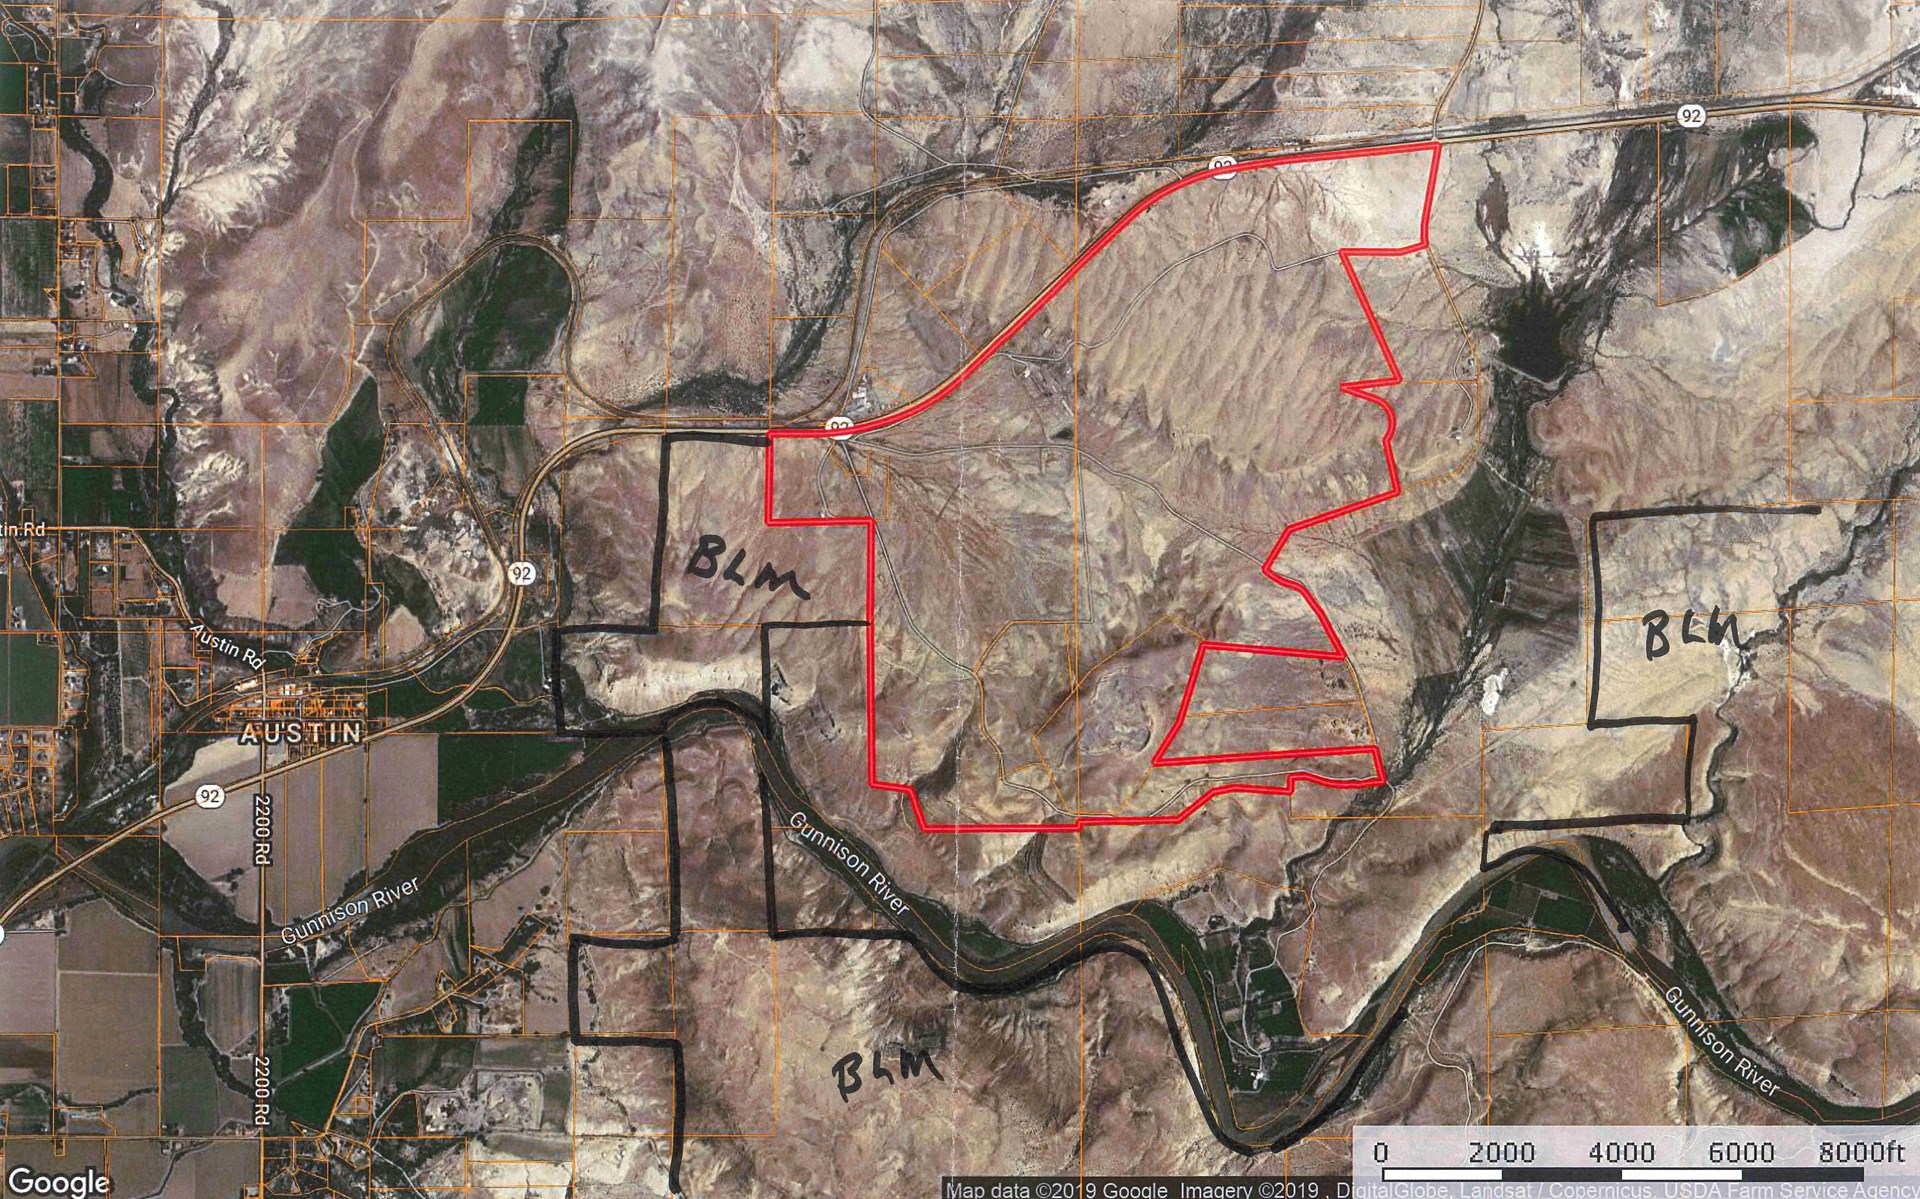 Colorado Development Land with Own Water Treatment Plant